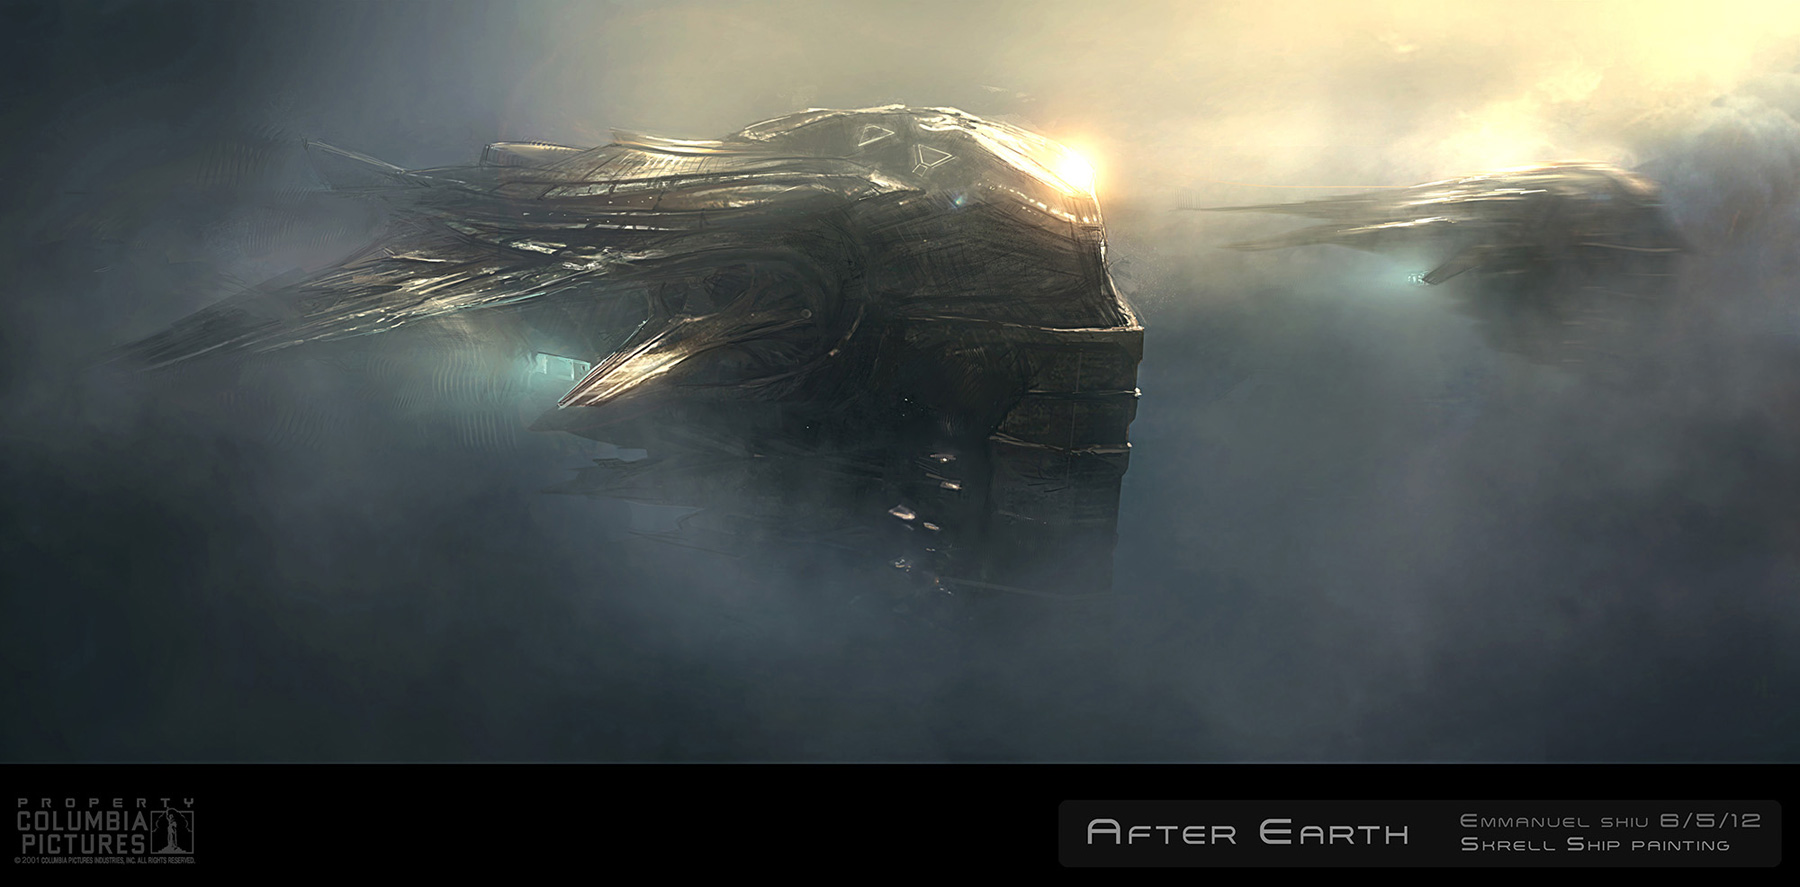 after earth concept art - photo #29